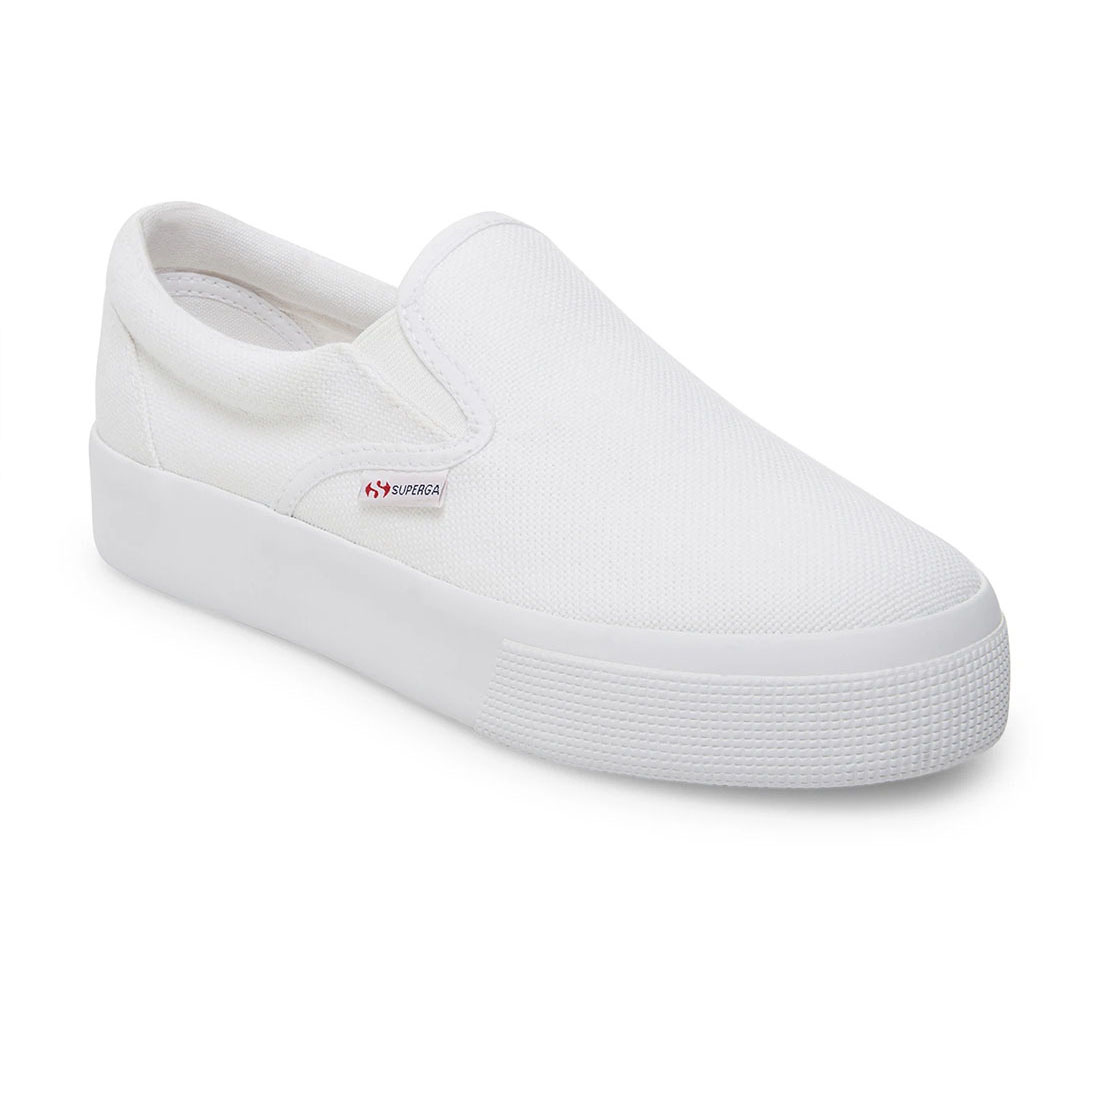 superga 2306 cotu slip on canvas in white 84559